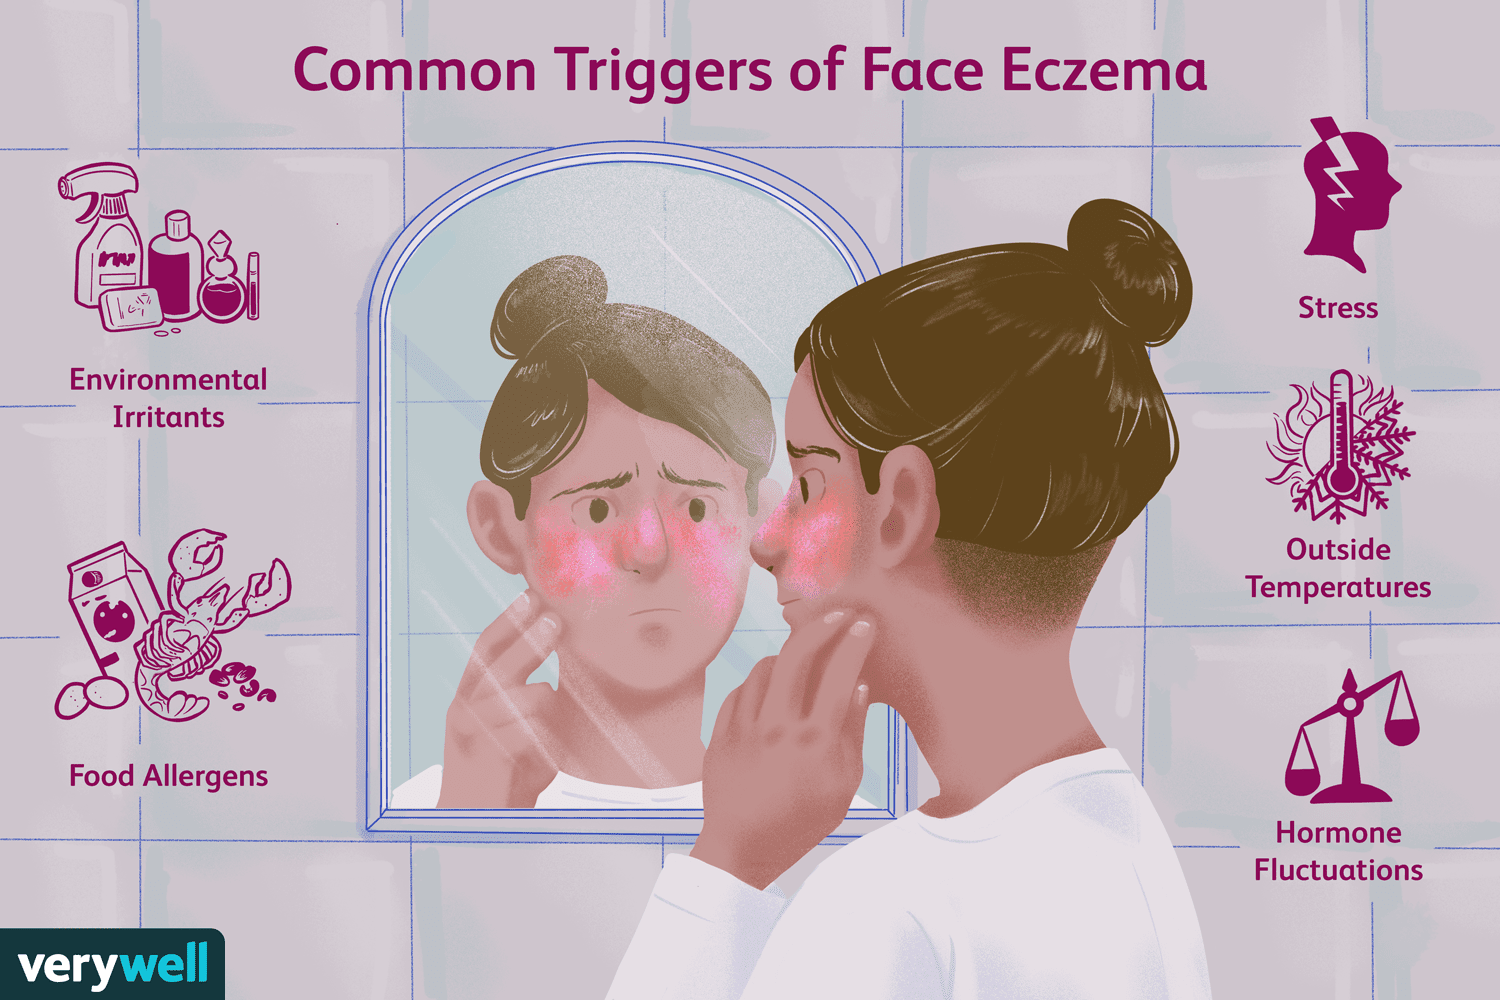 Common Triggers of Face Eczema